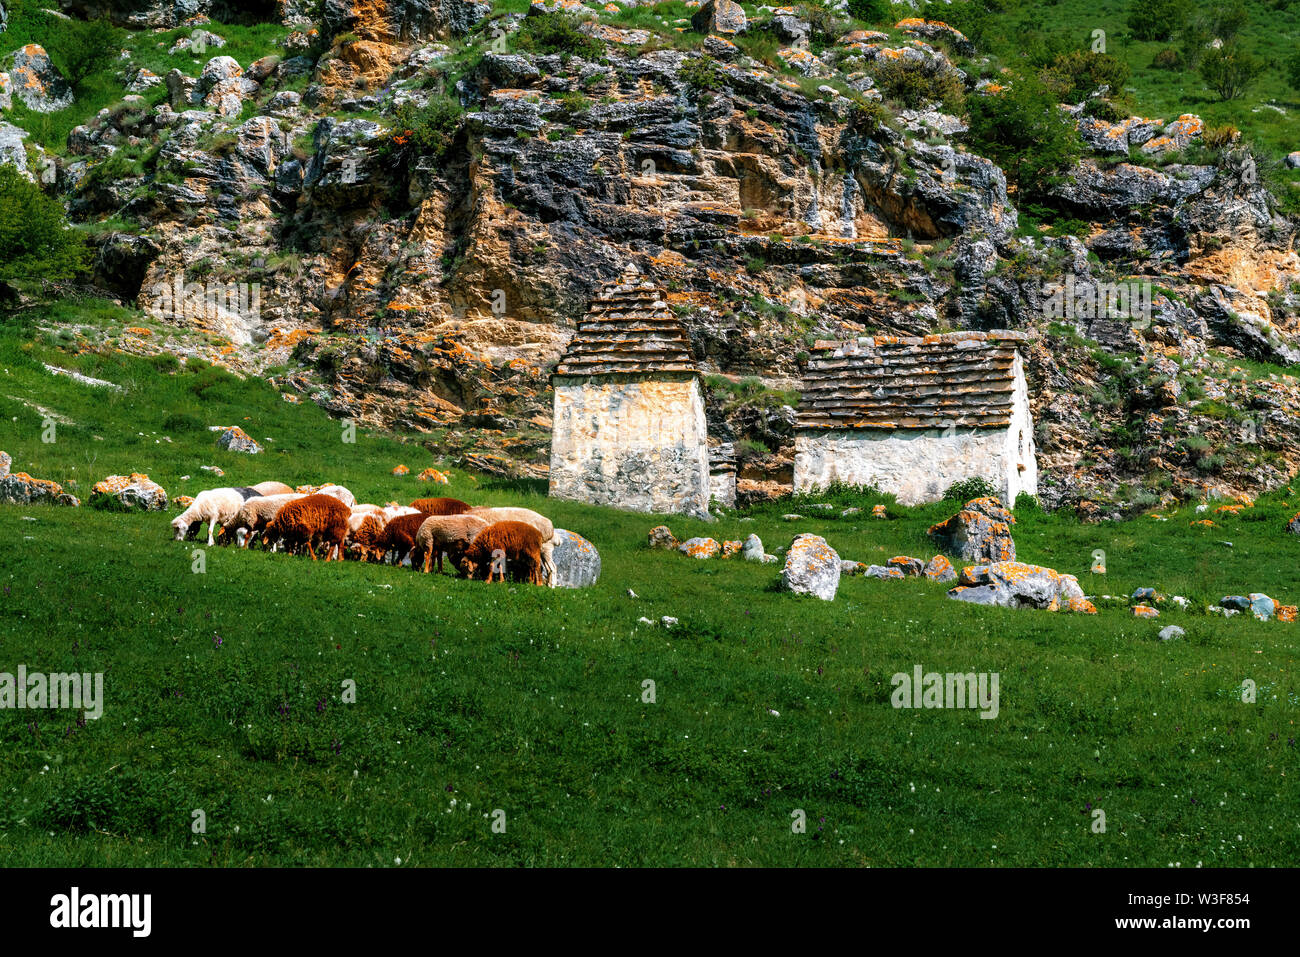 A flock of sheep eating grass in the green hills of the High Caucasus. Sheep flock on the background of the graves of the Alans crypts and a sheer, mo - Stock Image